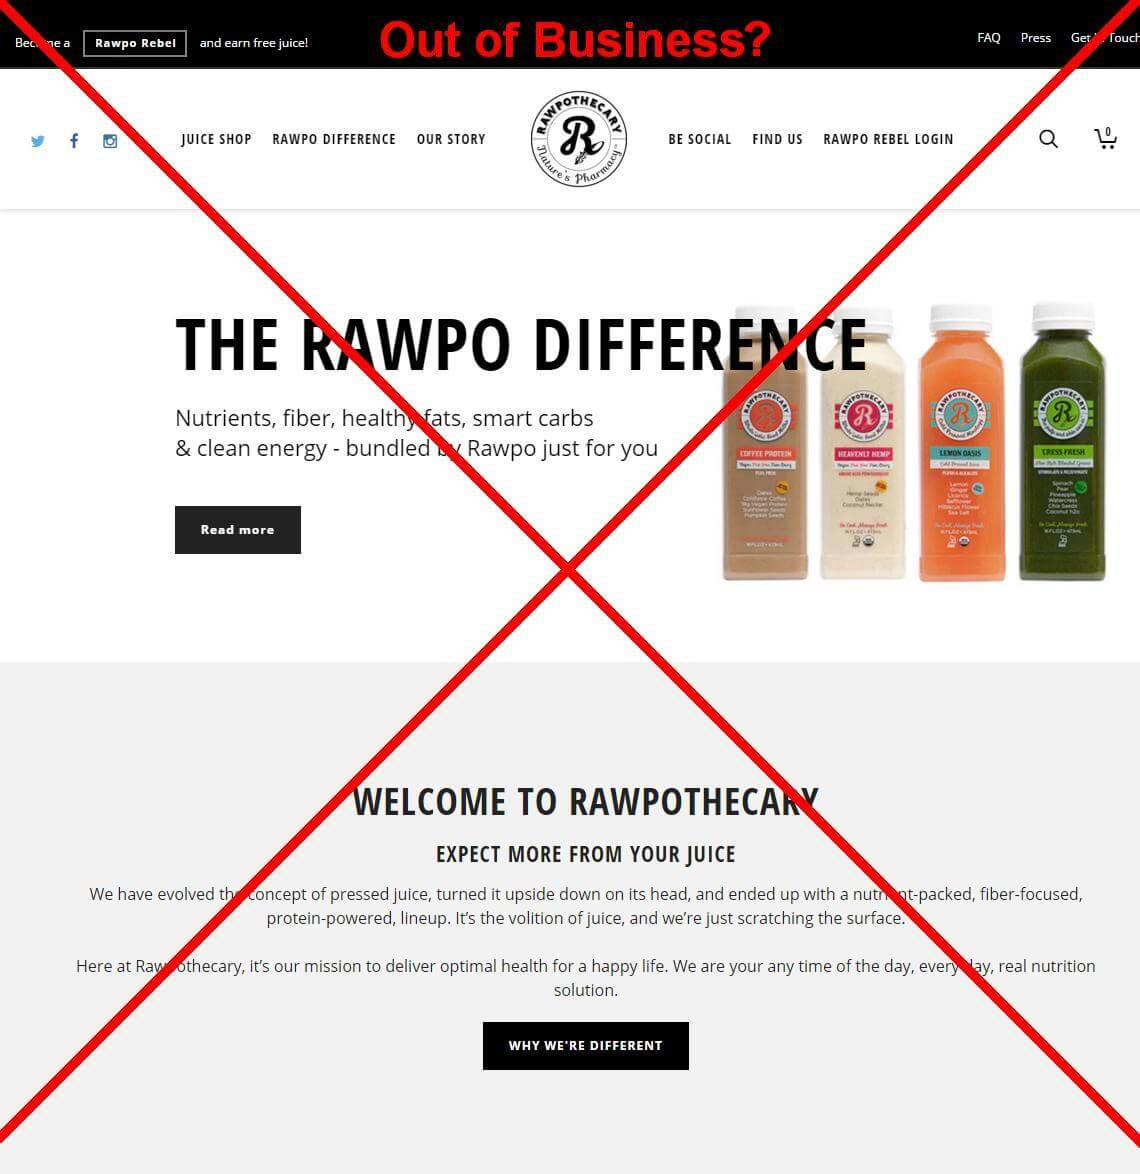 Juice Company Rawpothecary Going Under?